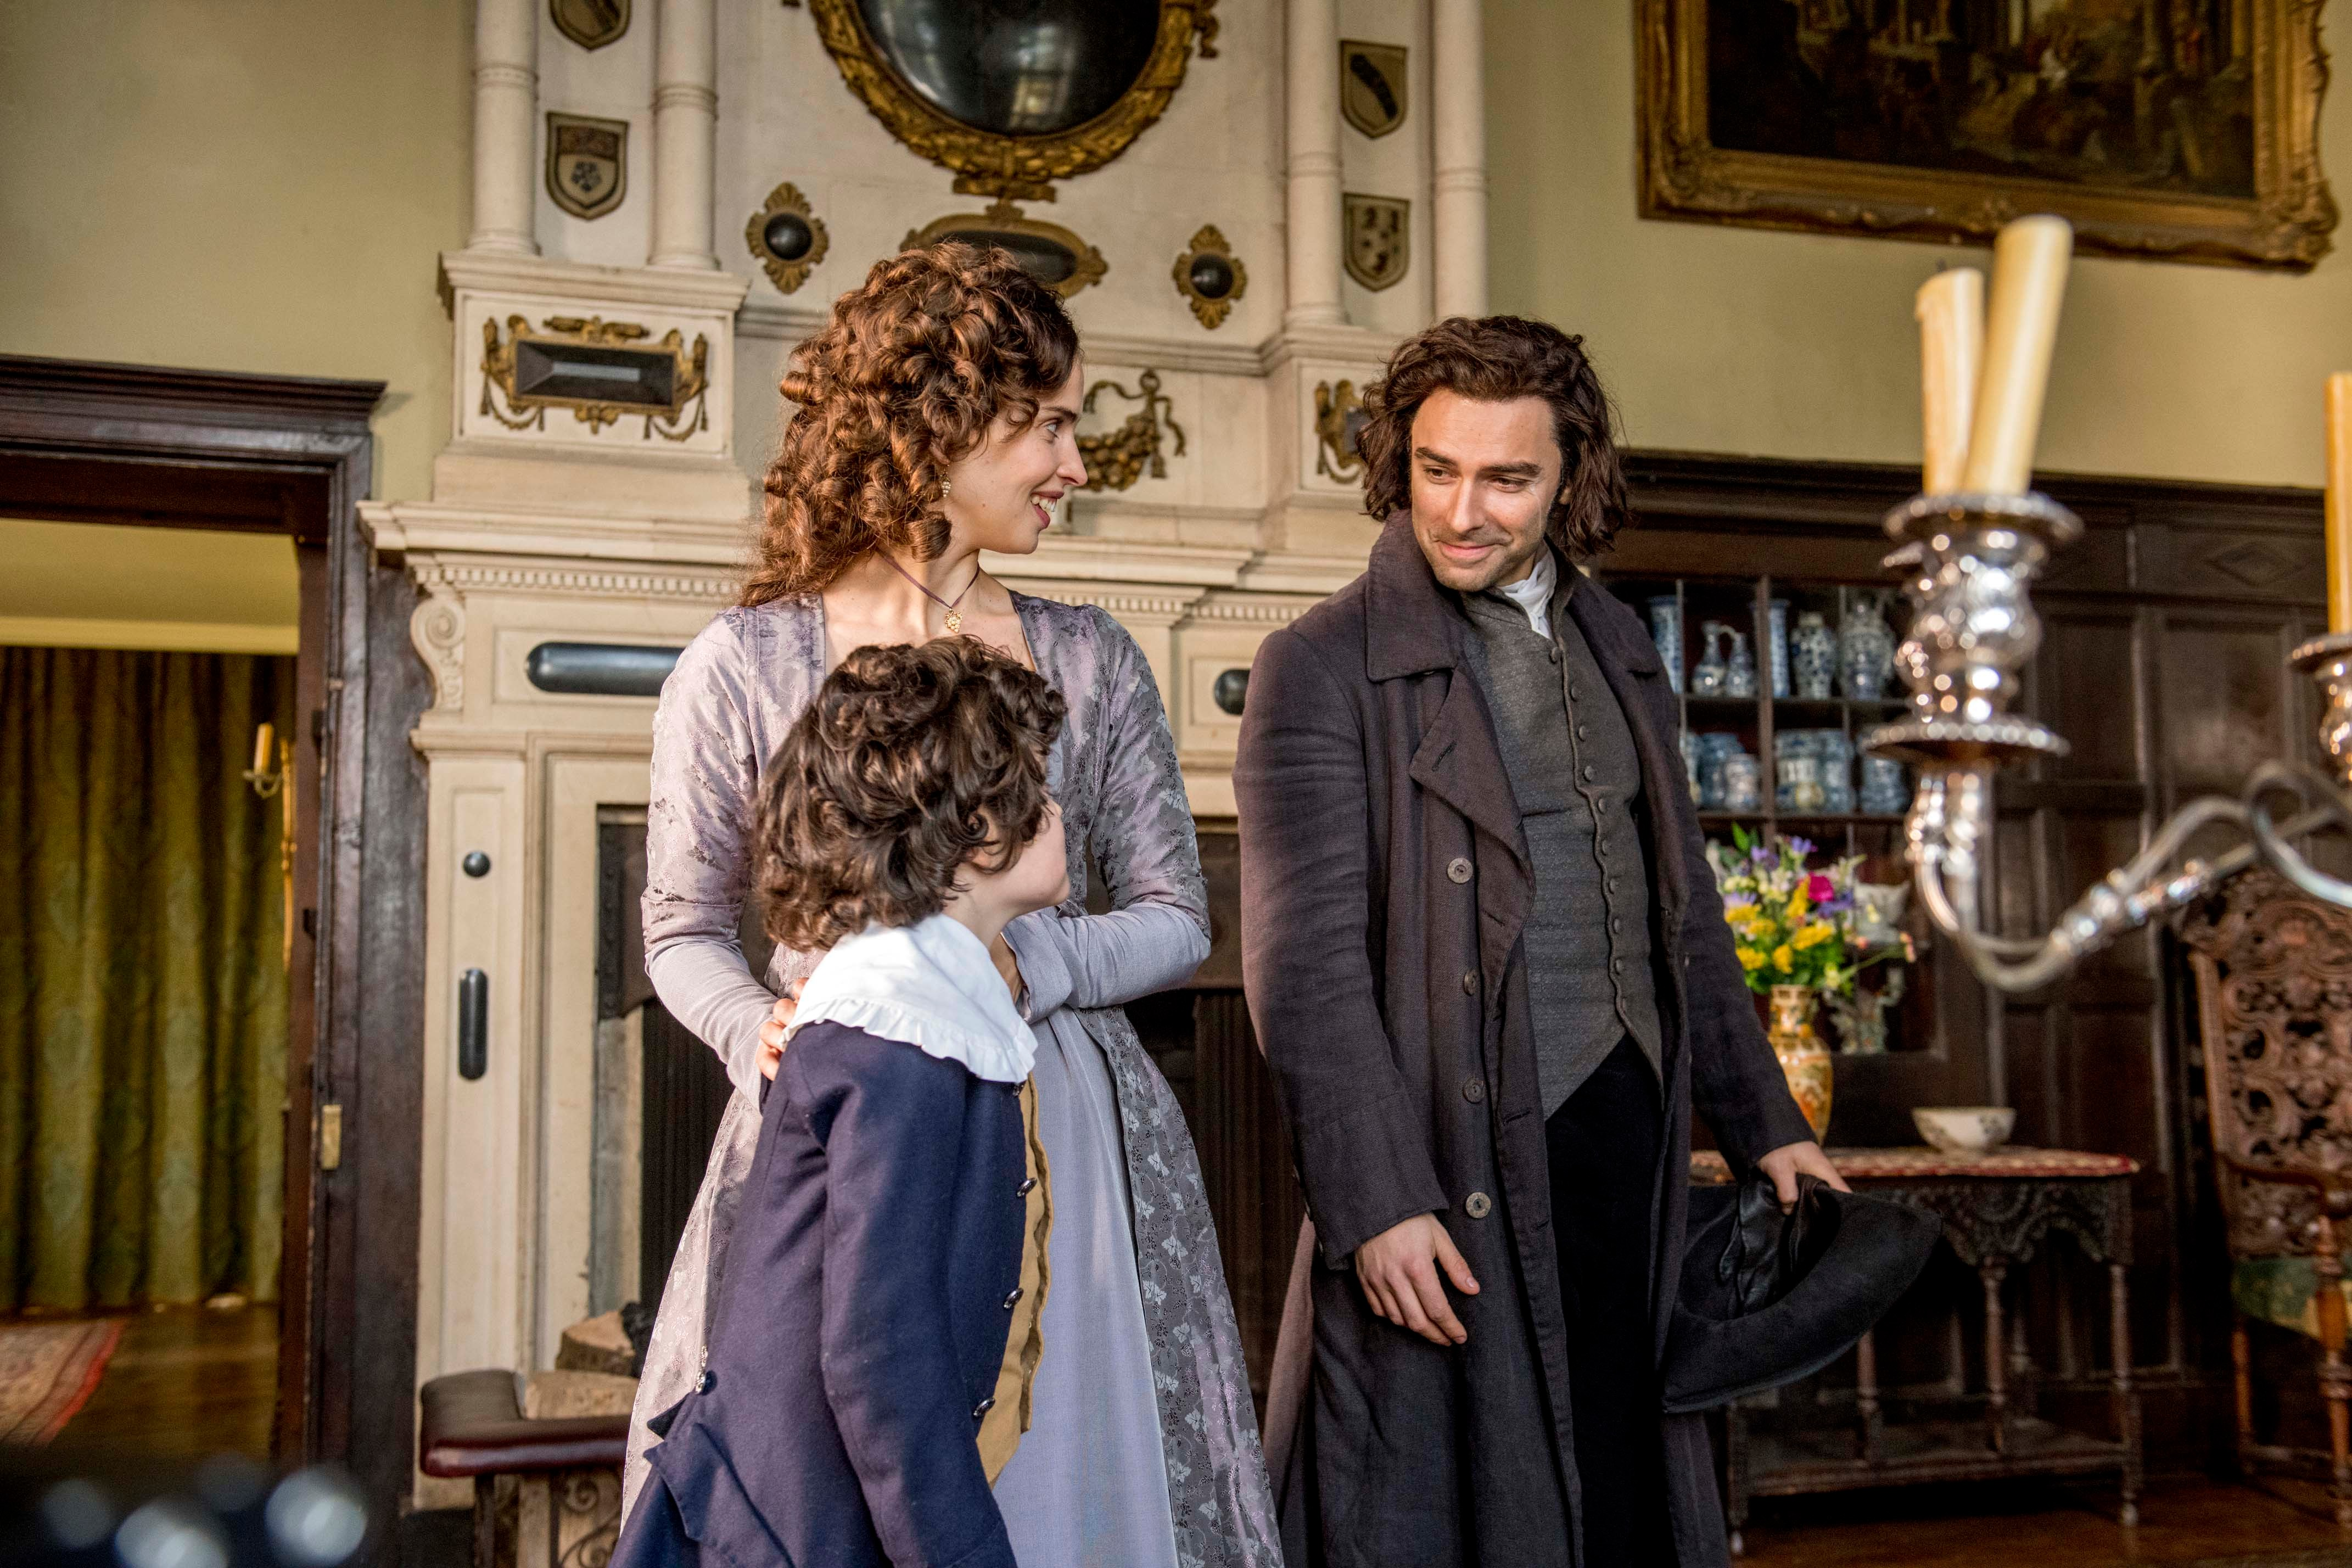 WARNING: Embargoed for publication until 00:00:01 on 03/07/2018 - Programme Name: Poldark - Series 4 - TX: n/a - Episode: Poldark S4 - EP5 (No. 5) - Picture Shows: ***EMBARGOED TILL 3RD JULY 2018*** Ross Poldark (AIDAN TURNER), Elizabeth (HEIDA REED), Valentine (ALFIE RIGBY) - (C) Mammoth Screen  - Photographer: Robert Viglasky